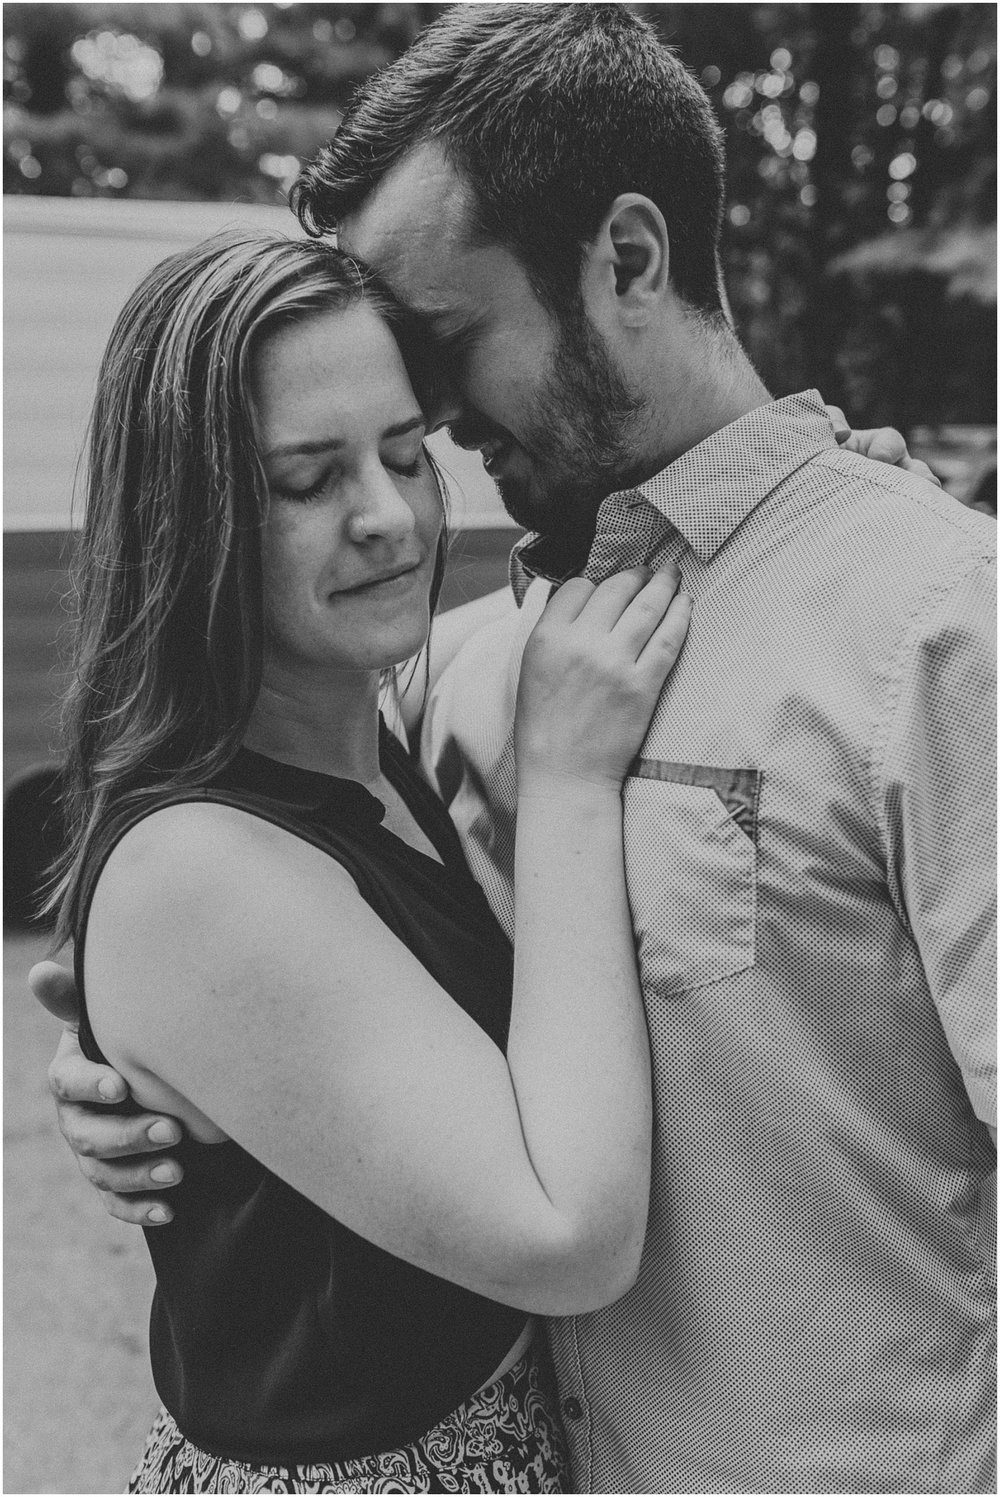 lifestyle-anniversary-engagement-photo session-rv-camping-road trip-vintage trailer-camping-outdoor photos_0231.jpg